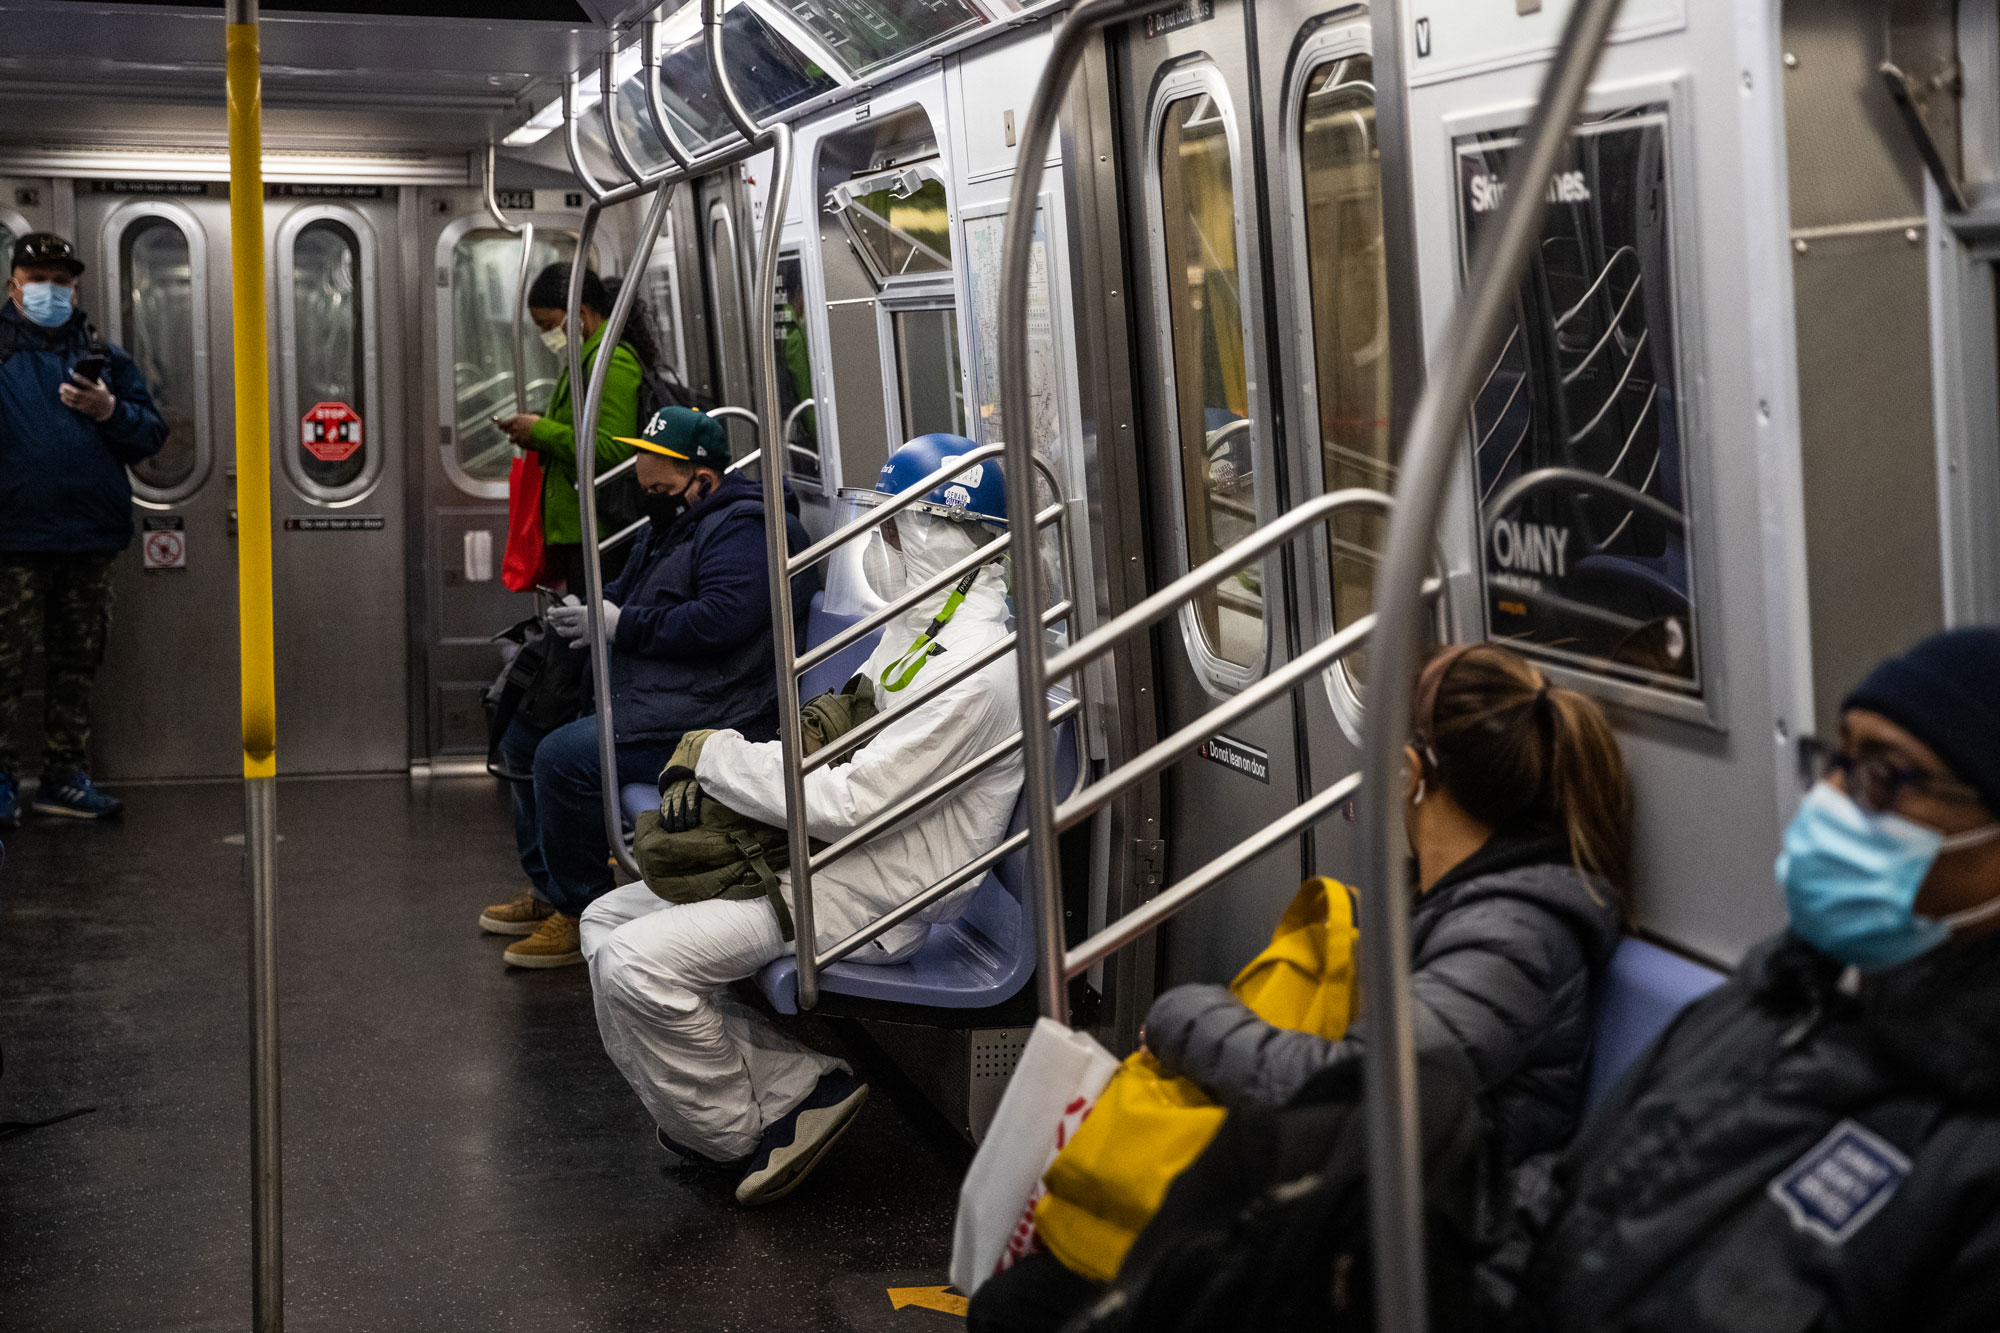 Passengers ride the subway on April 28, in New York City.